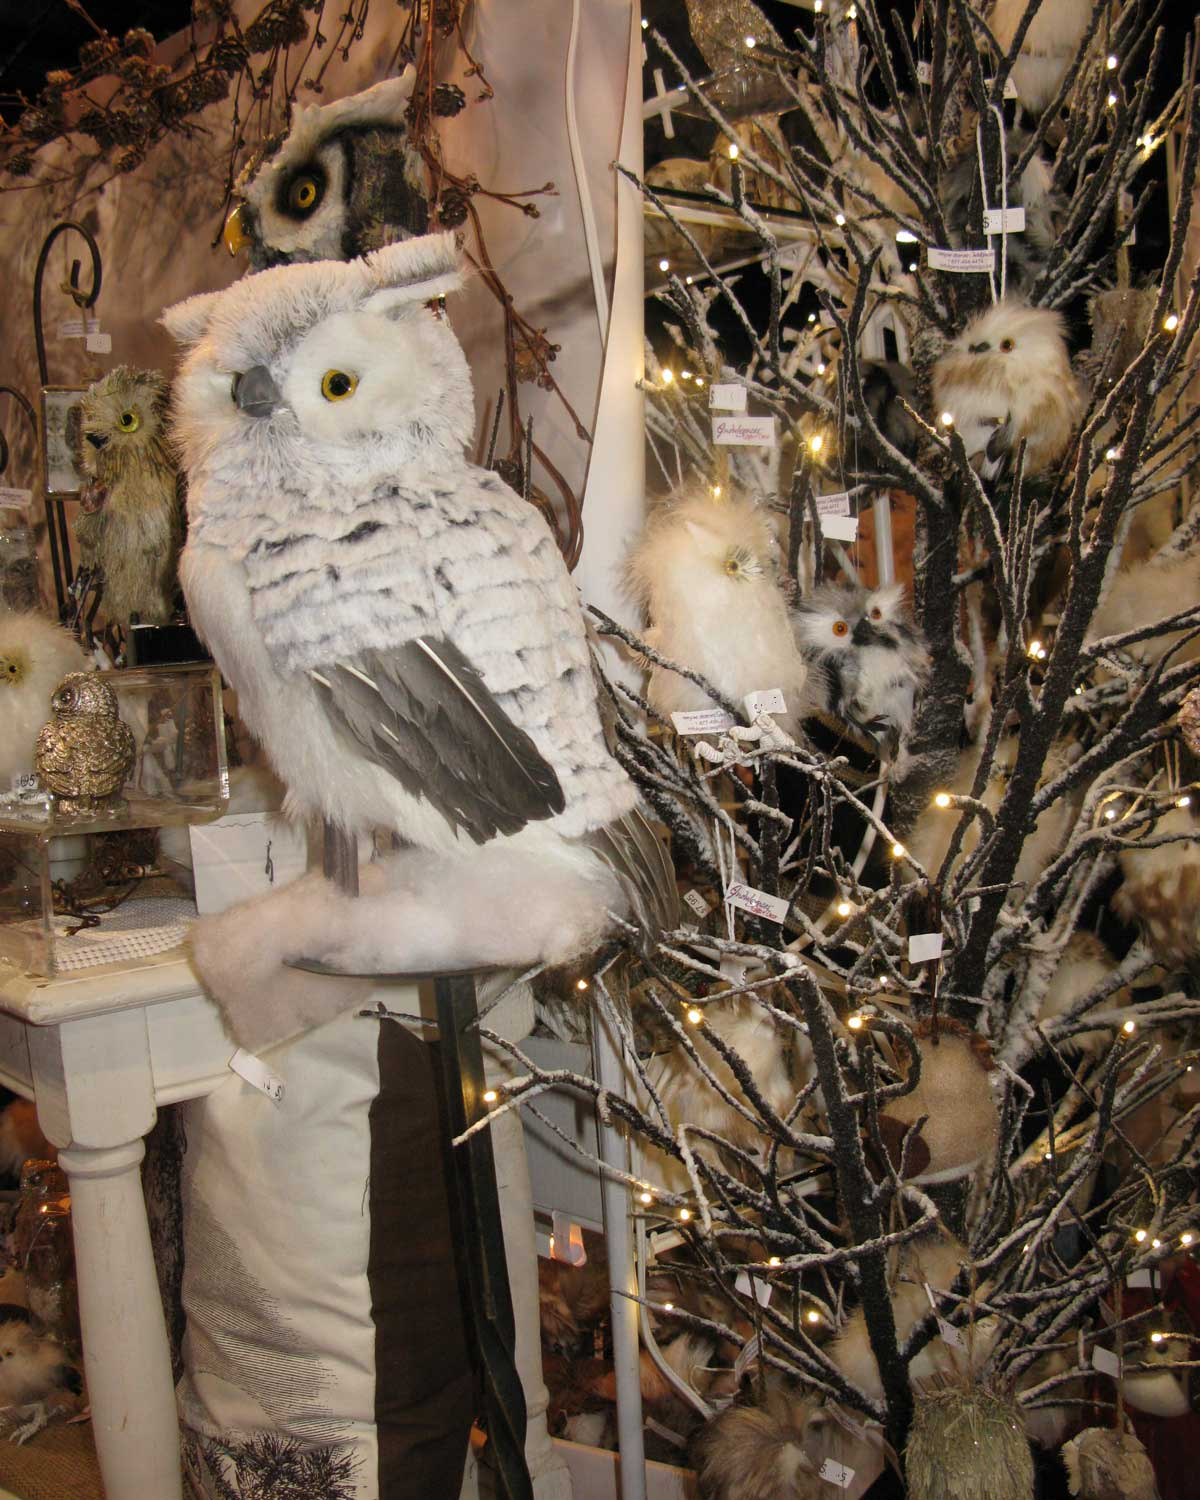 Indulgences Gifts And Decor: More Owls